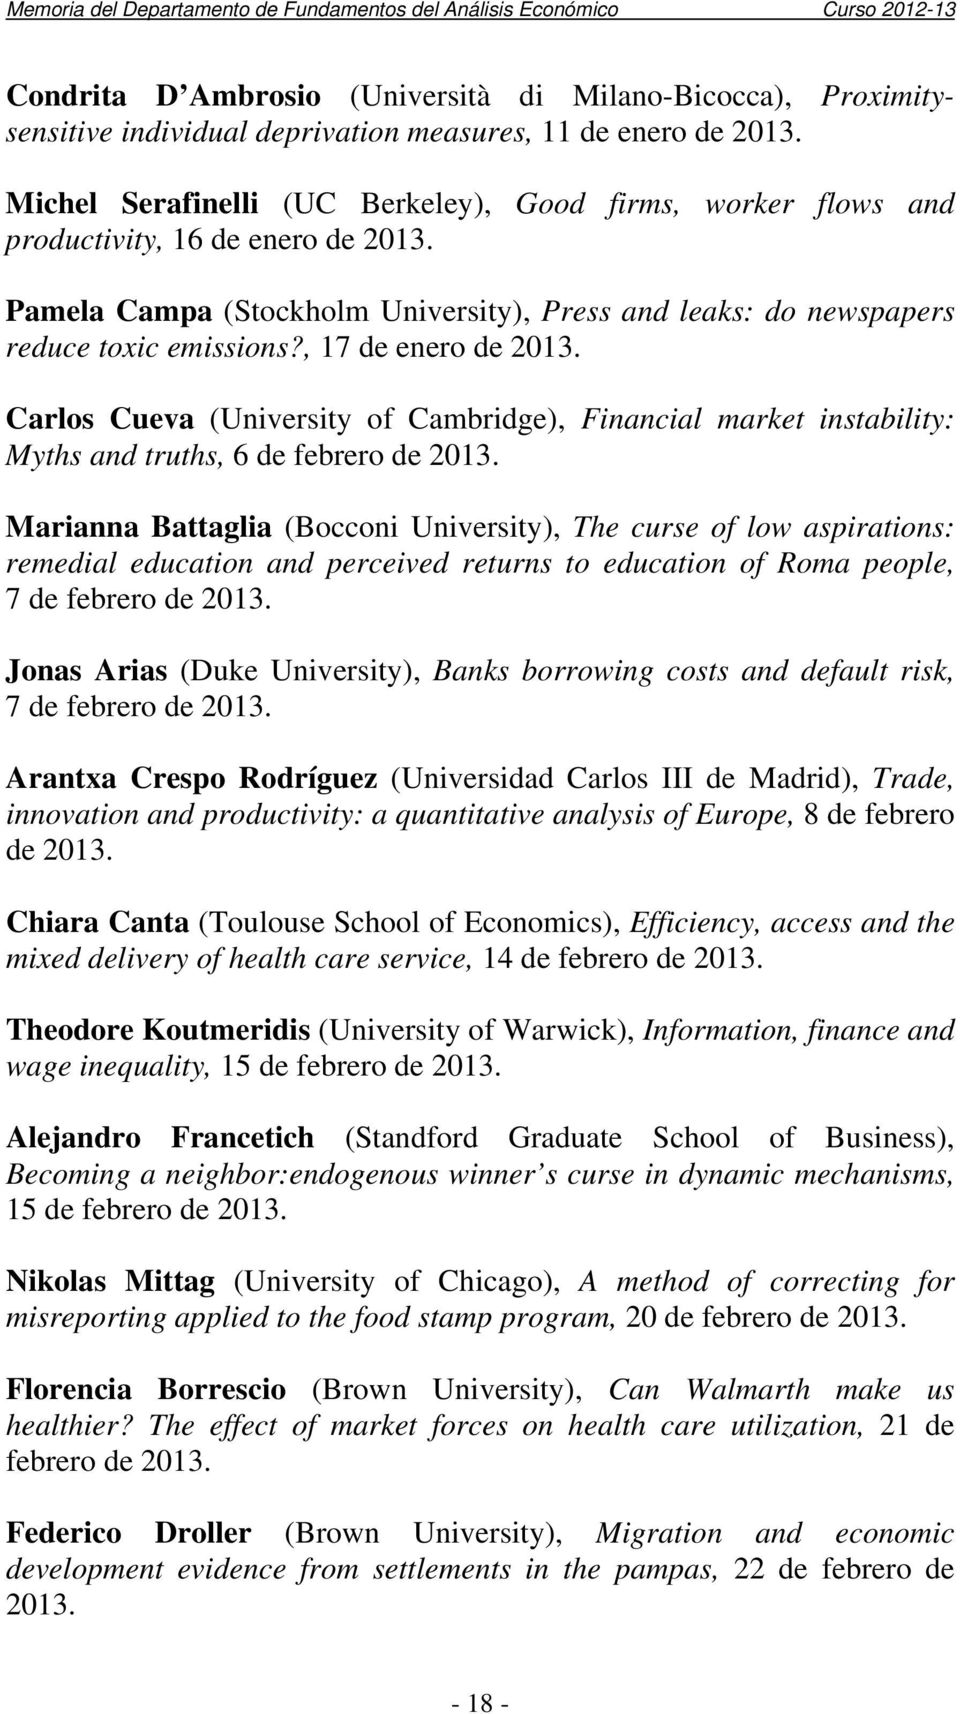 , 17 de enero de 2013. Carlos Cueva (University of Cambridge), Financial market instability: Myths and truths, 6 de febrero de 2013.